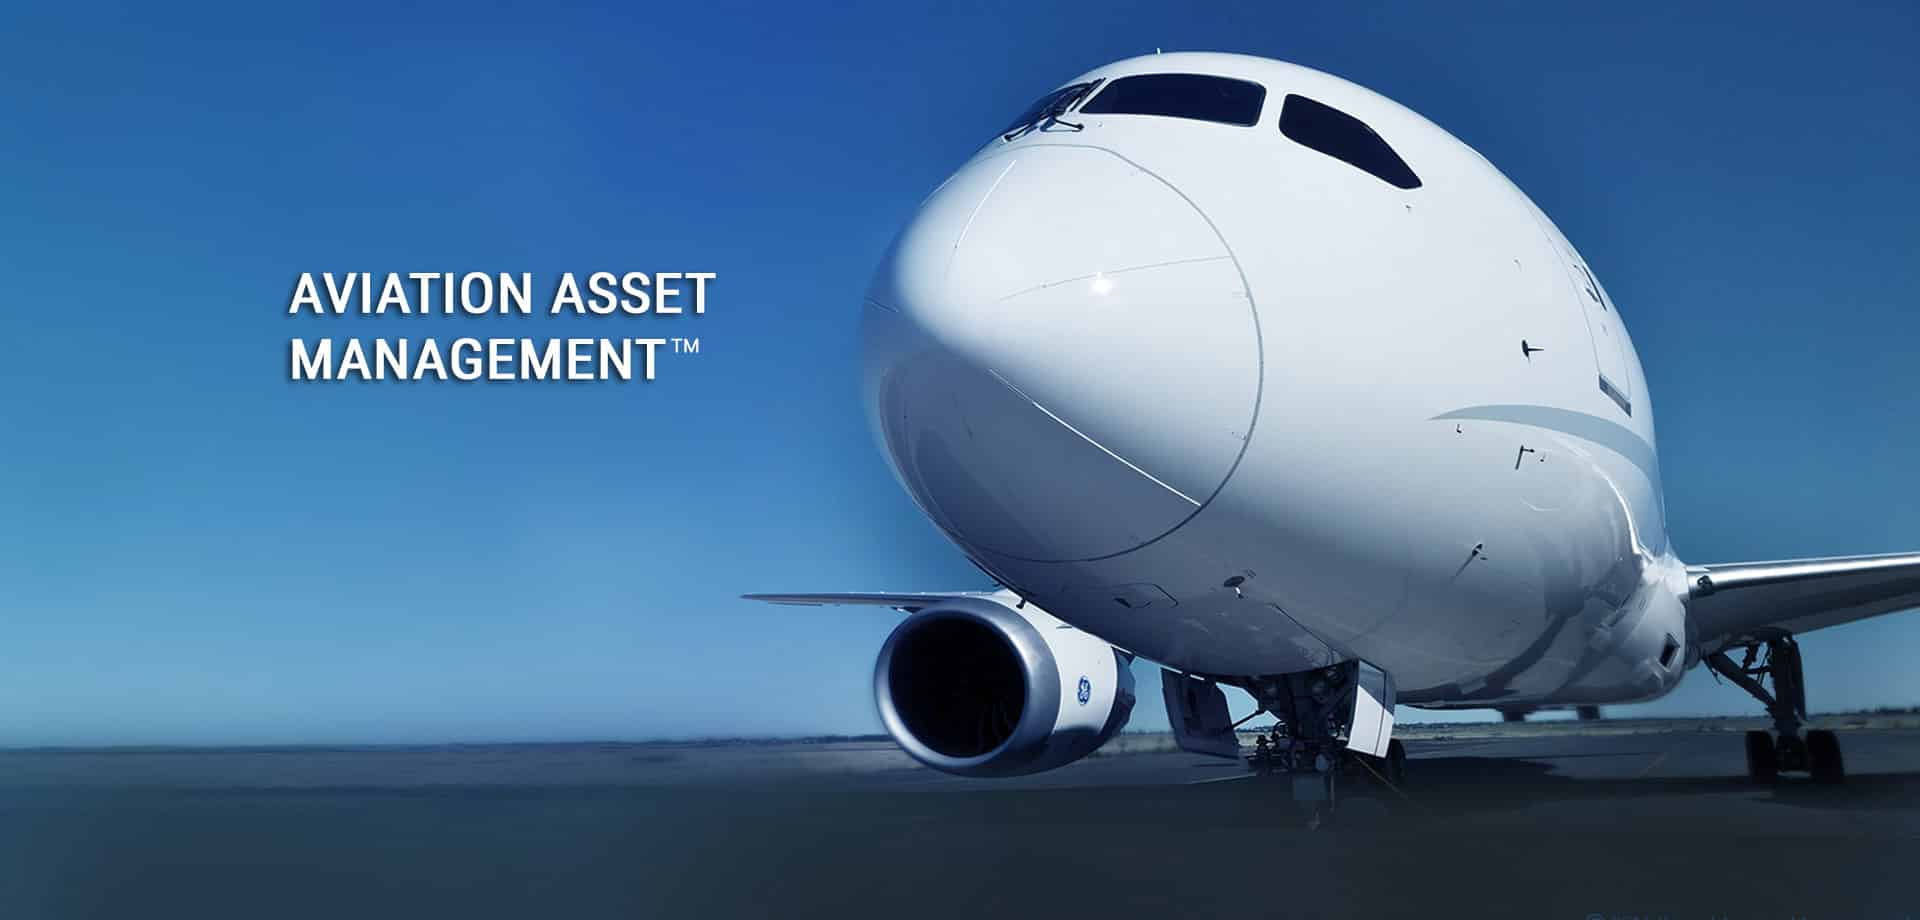 Aviation Asset Management